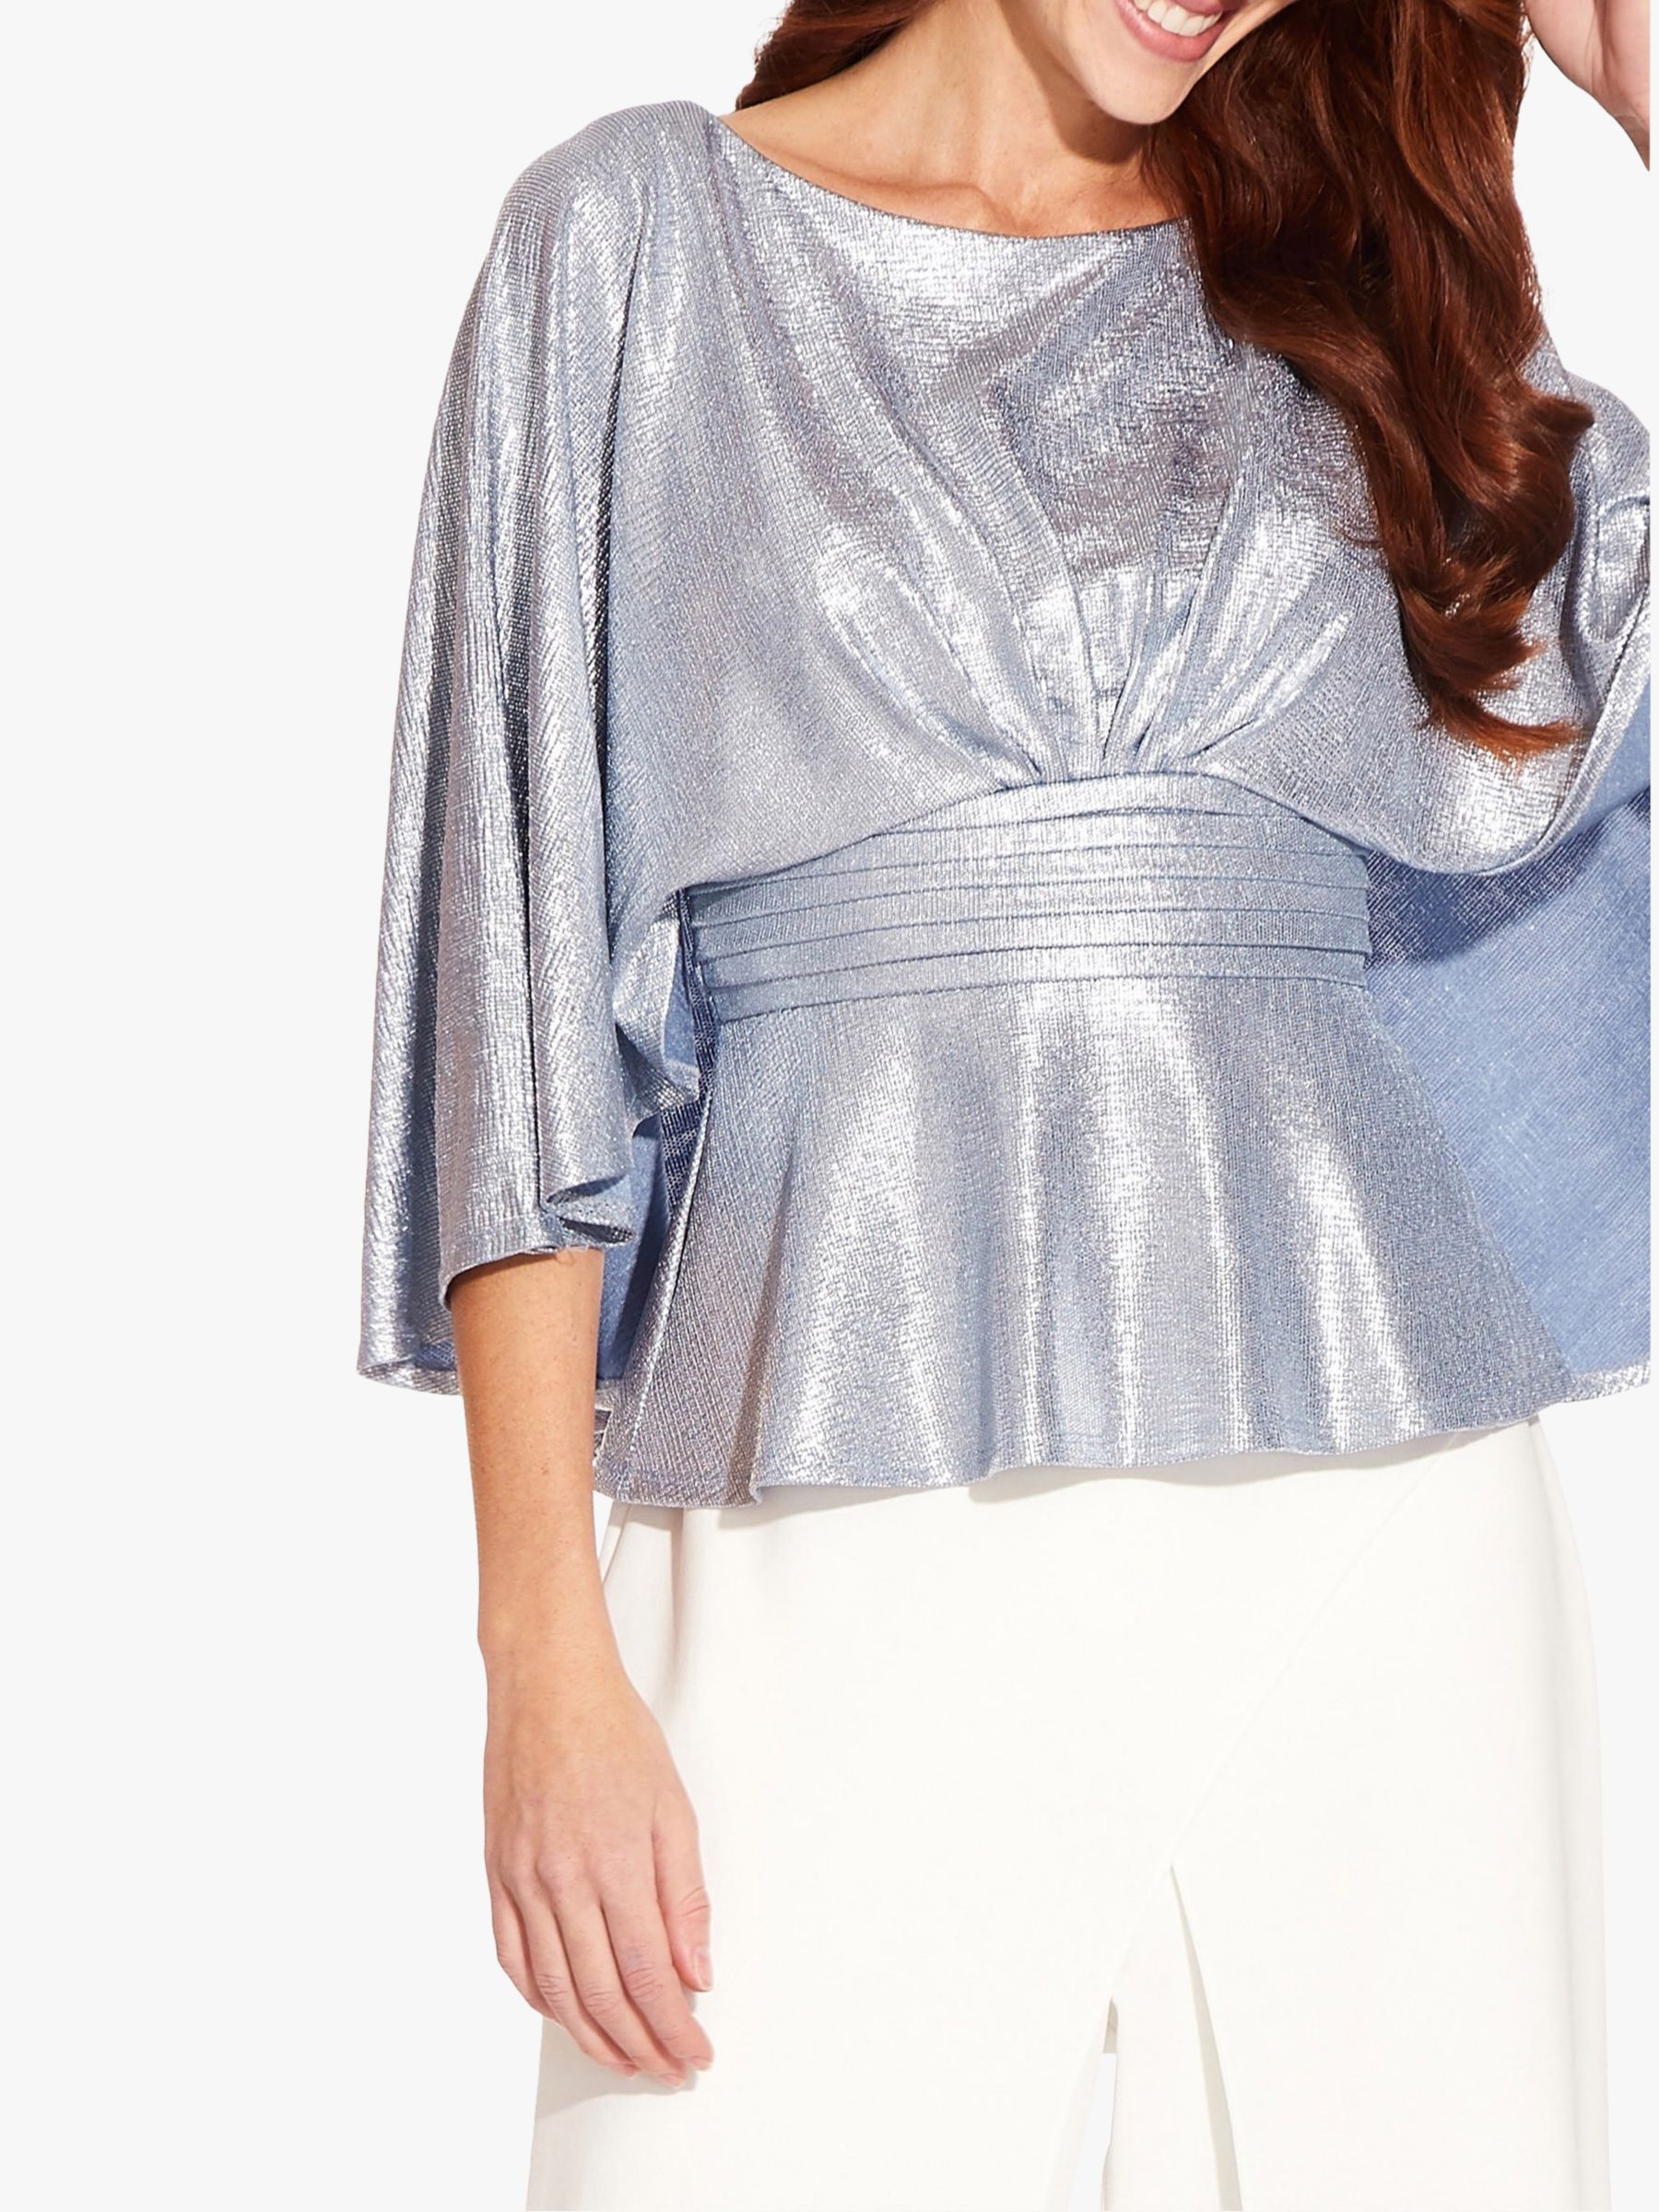 Adrianna Papell Adrianna Papell Cape Sleeve Foil Jersey Top, Silver Blue Lake